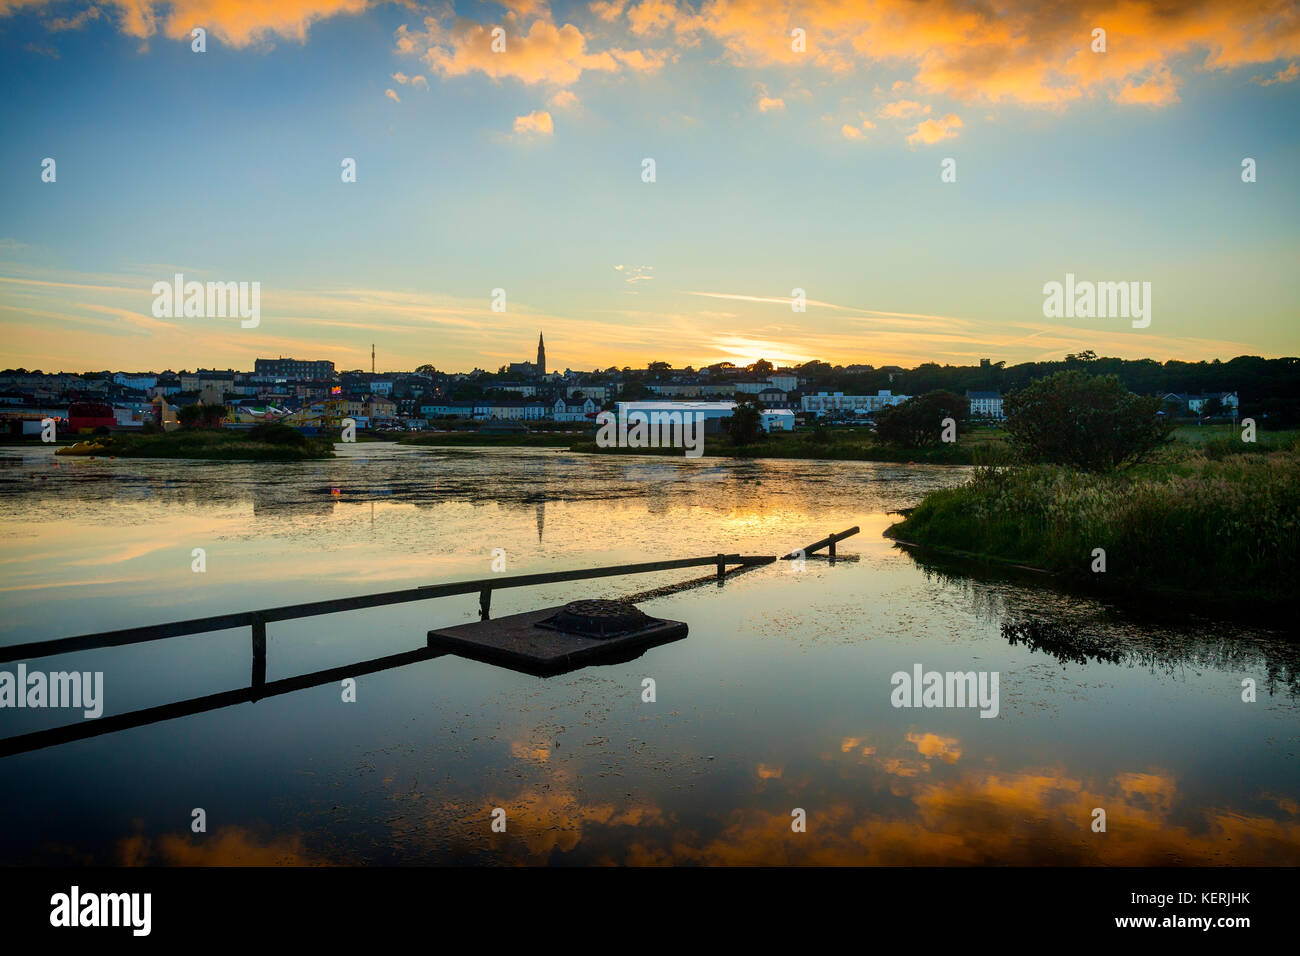 Townscape and Skyline of Tramore, Seen across the Boating Lake, County Waterford, Ireland - Stock Image